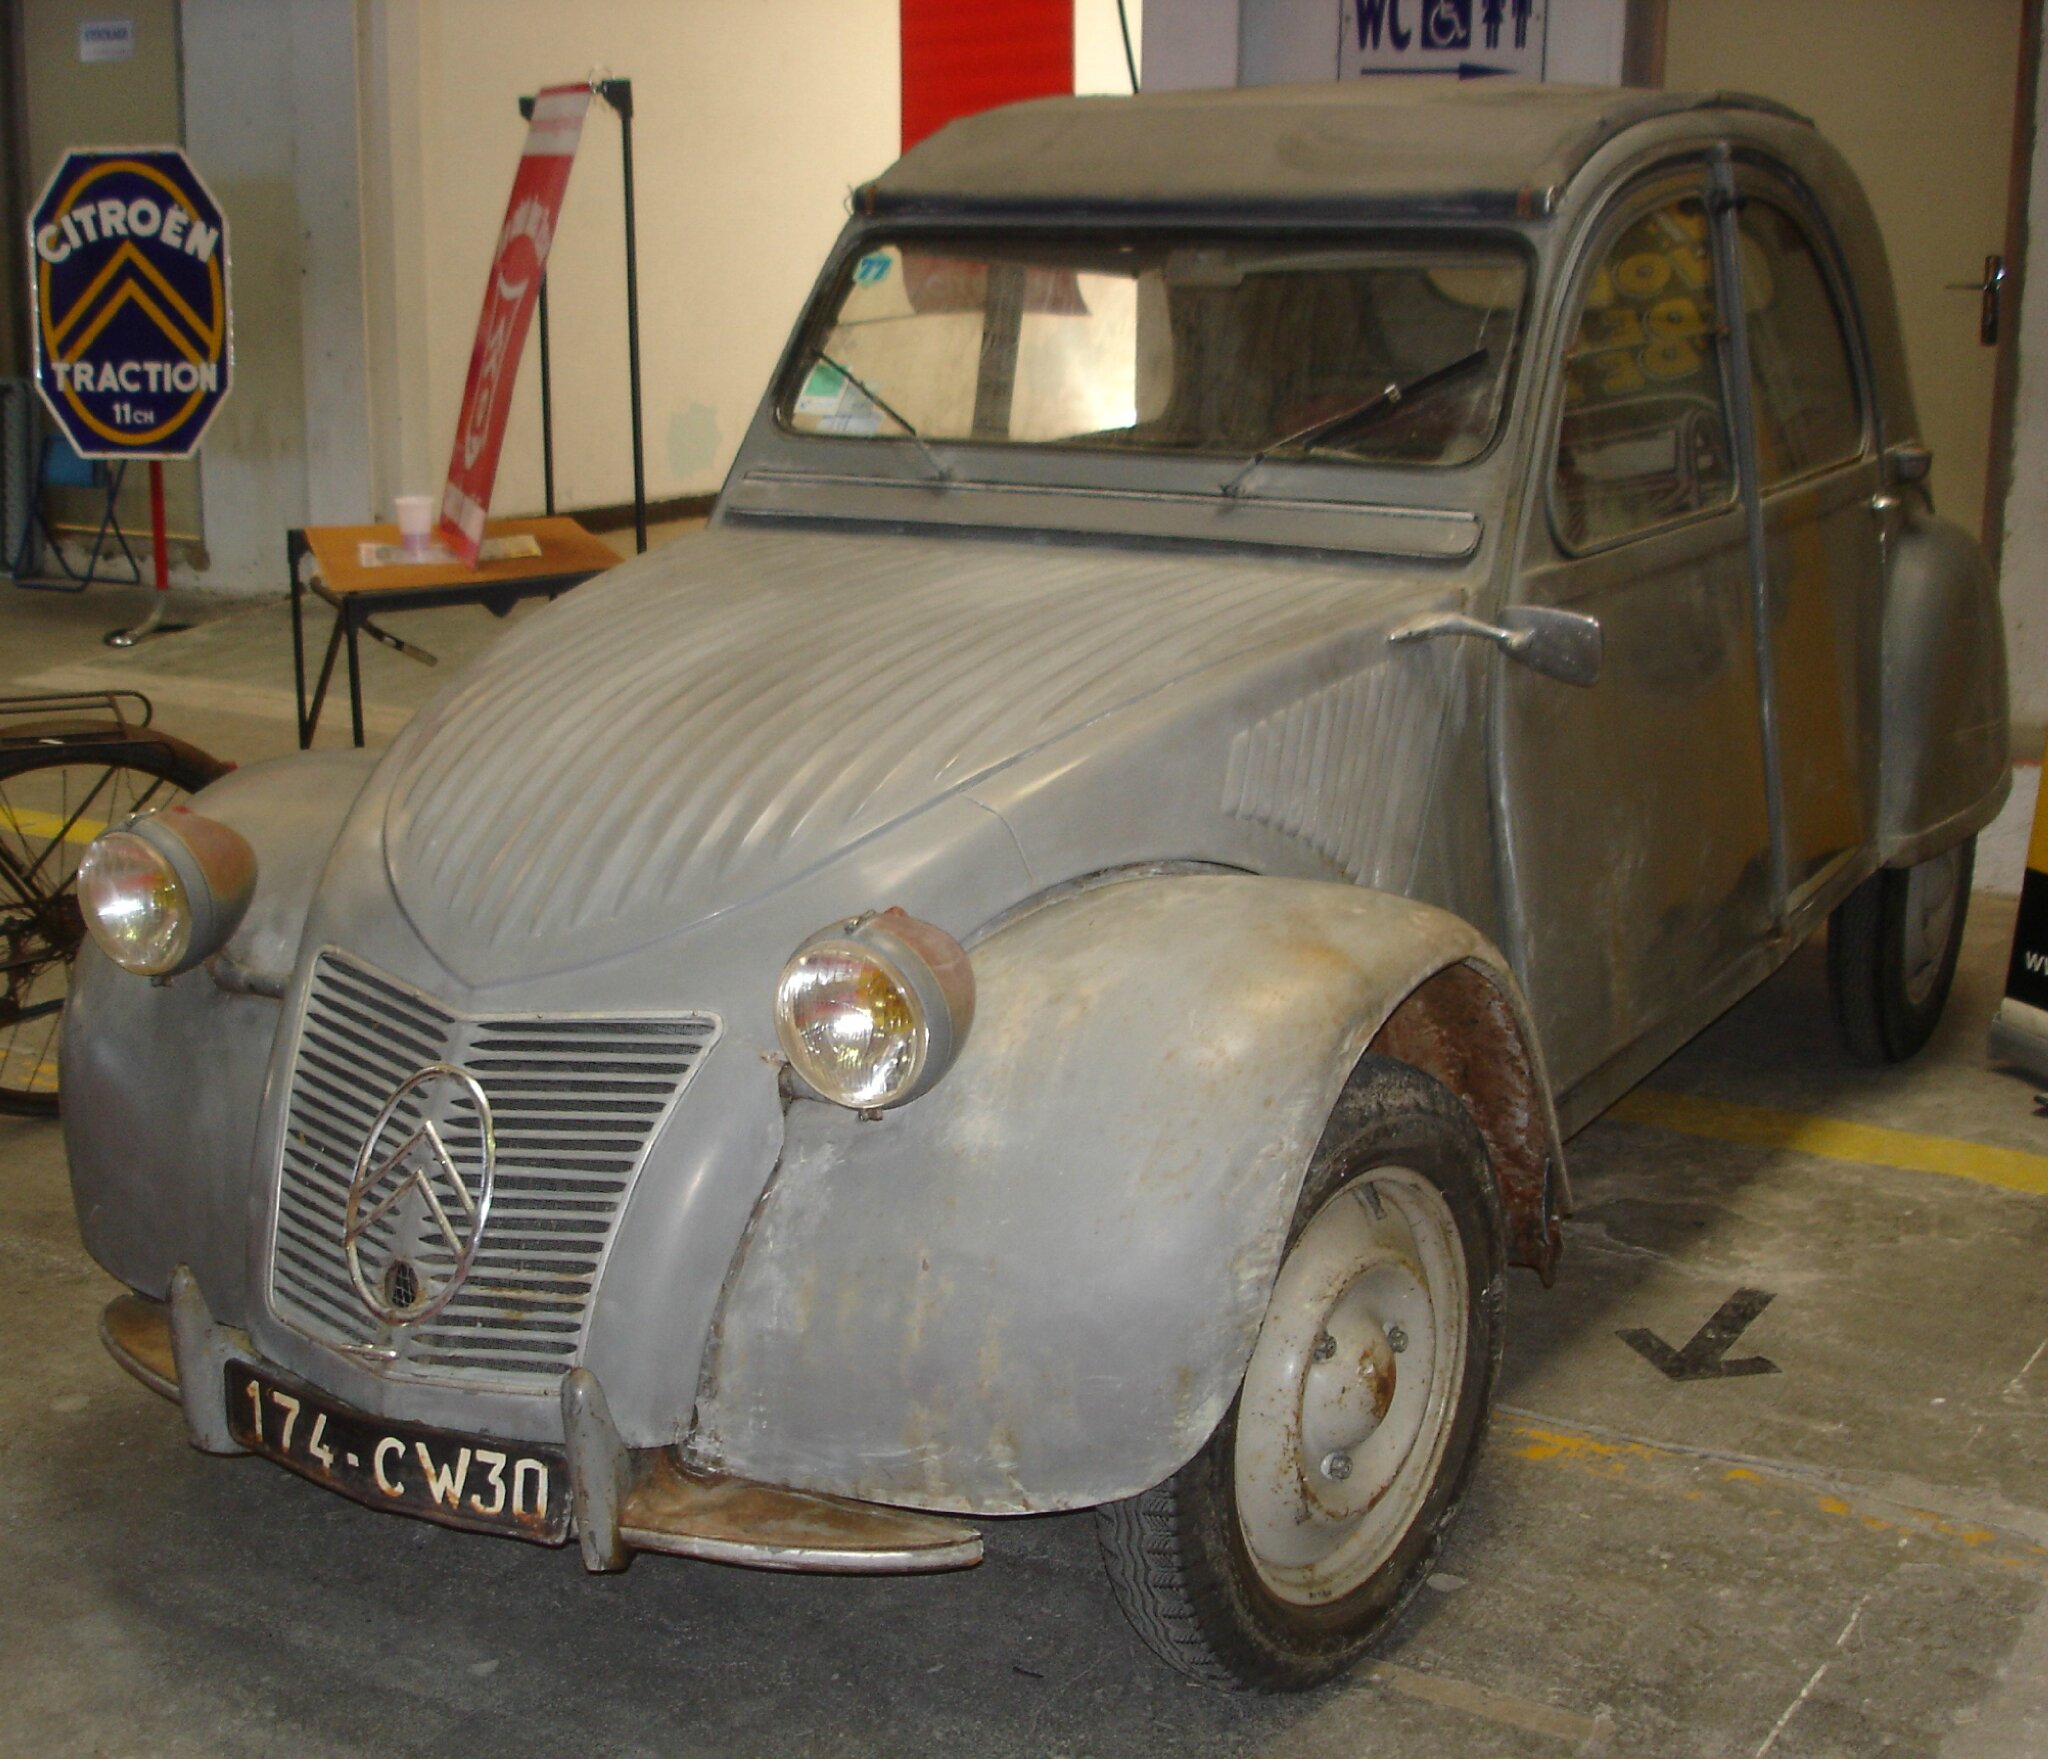 la 2cv a 1953 de michel l 2 cv capots ondul s. Black Bedroom Furniture Sets. Home Design Ideas